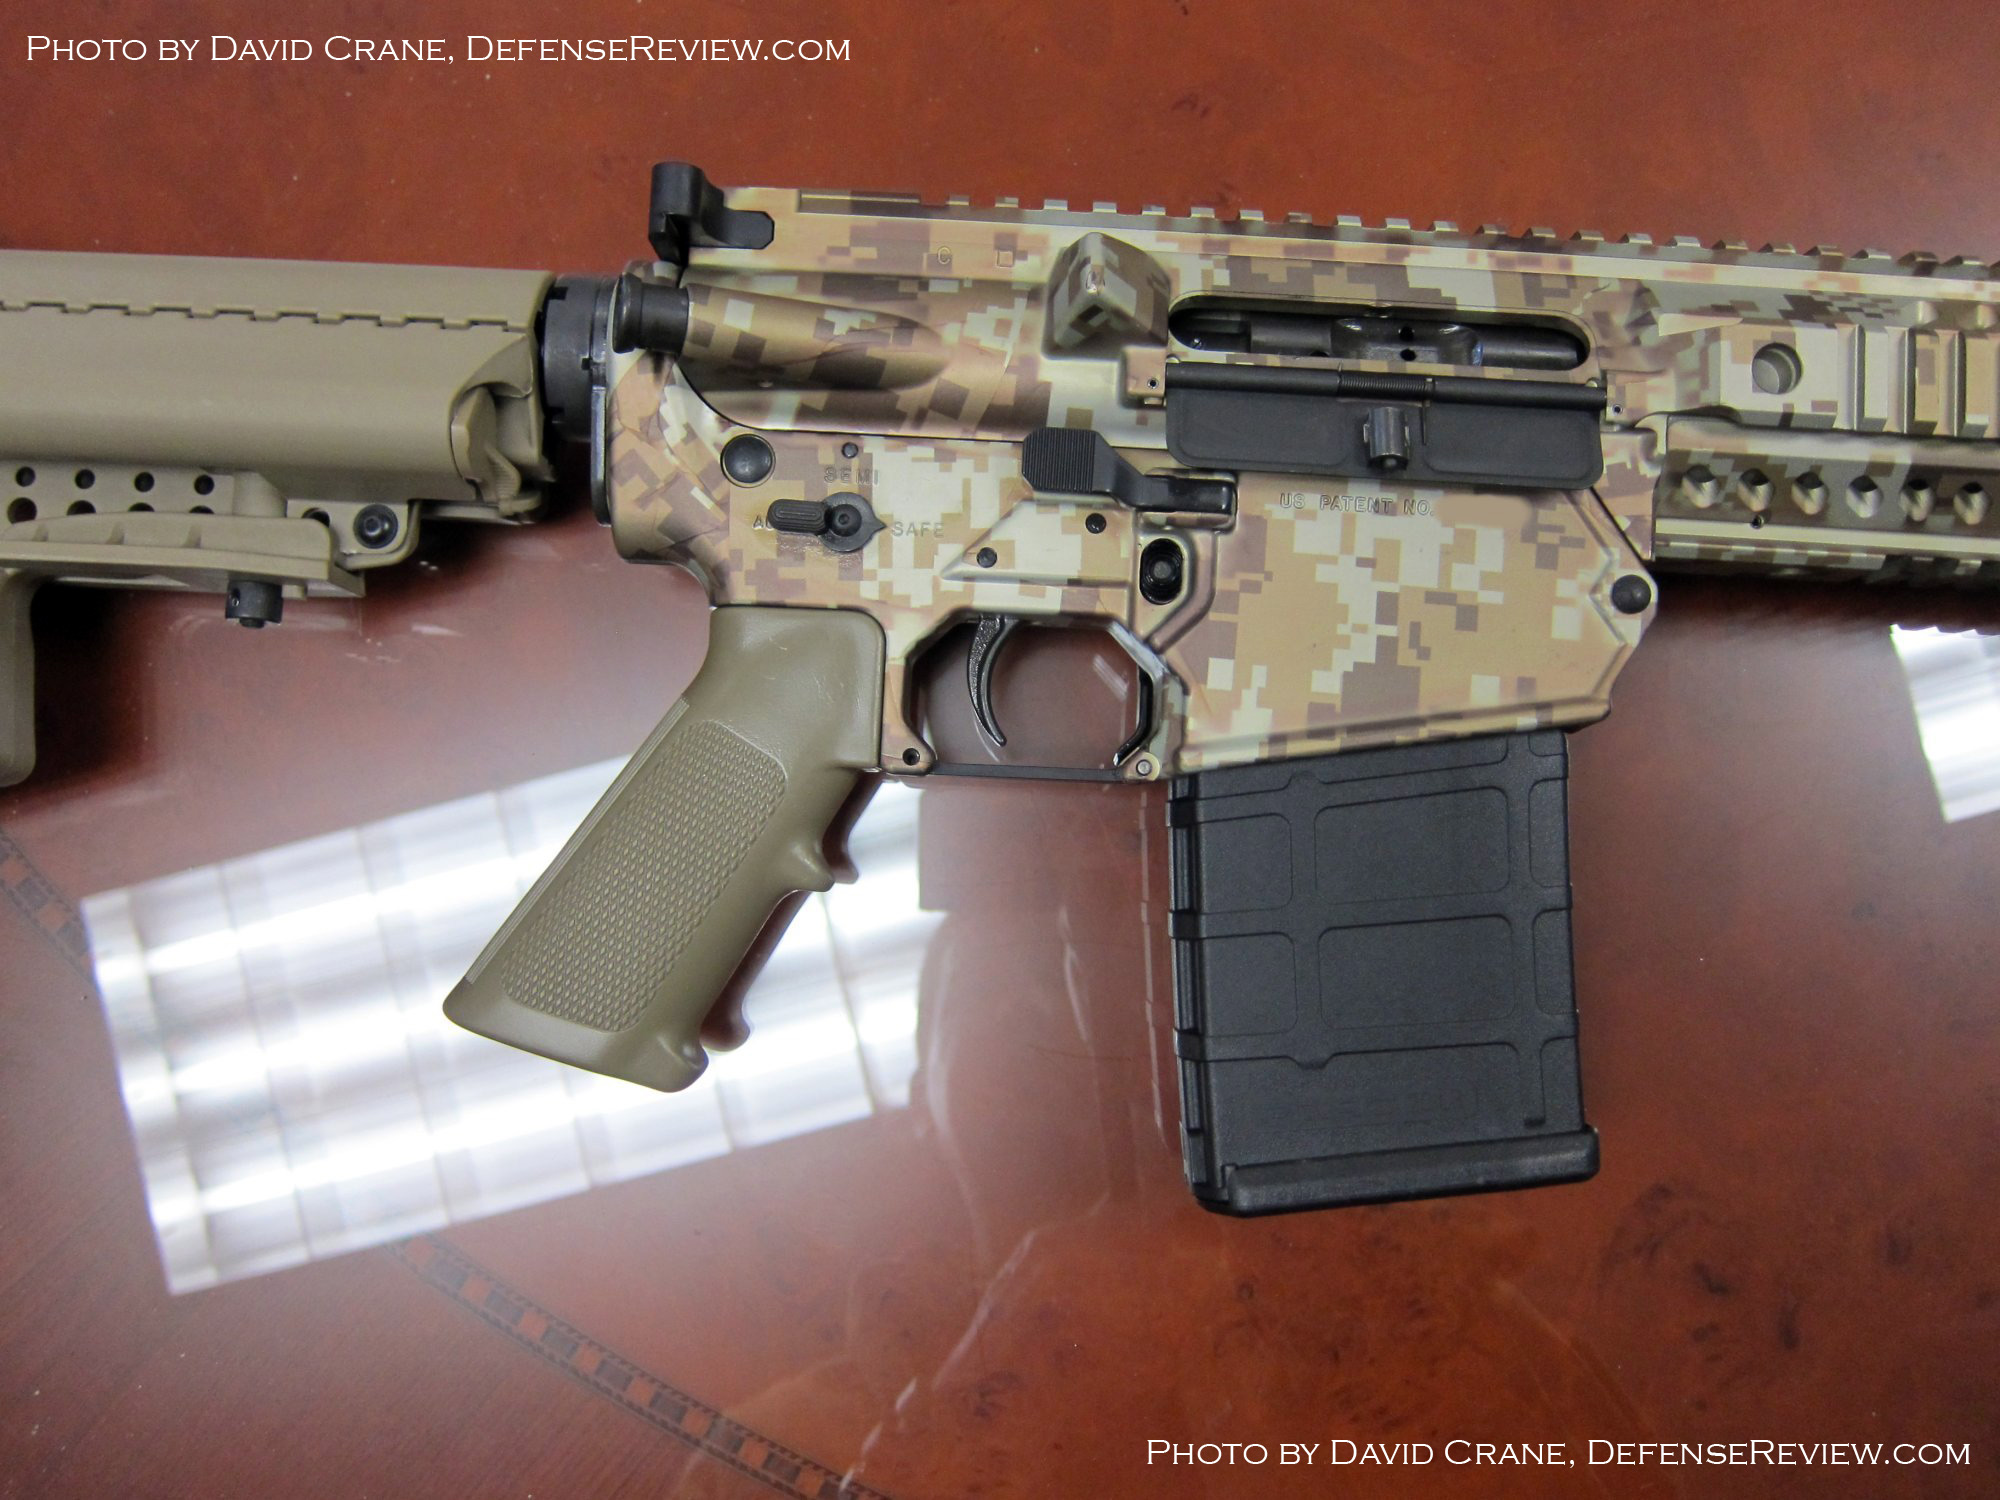 Colt CM901 AR Carbine SBR 7.62mm David Crane DefenseReview.com 26 <!  :en  >DR Exclusive First Look!: SCAR Who? Meet the Colt Modular Carbine (CMC) Model CM901 Multi Caliber 7.62mm NATO Battle Rifle / 5.56mm NATO Assault Rifle for U.S. Military Special Operations Forces (SOF) and General Infantry Forces (GIF). DefenseReview (DR) Reports (Photos and Video!) <!  :  >